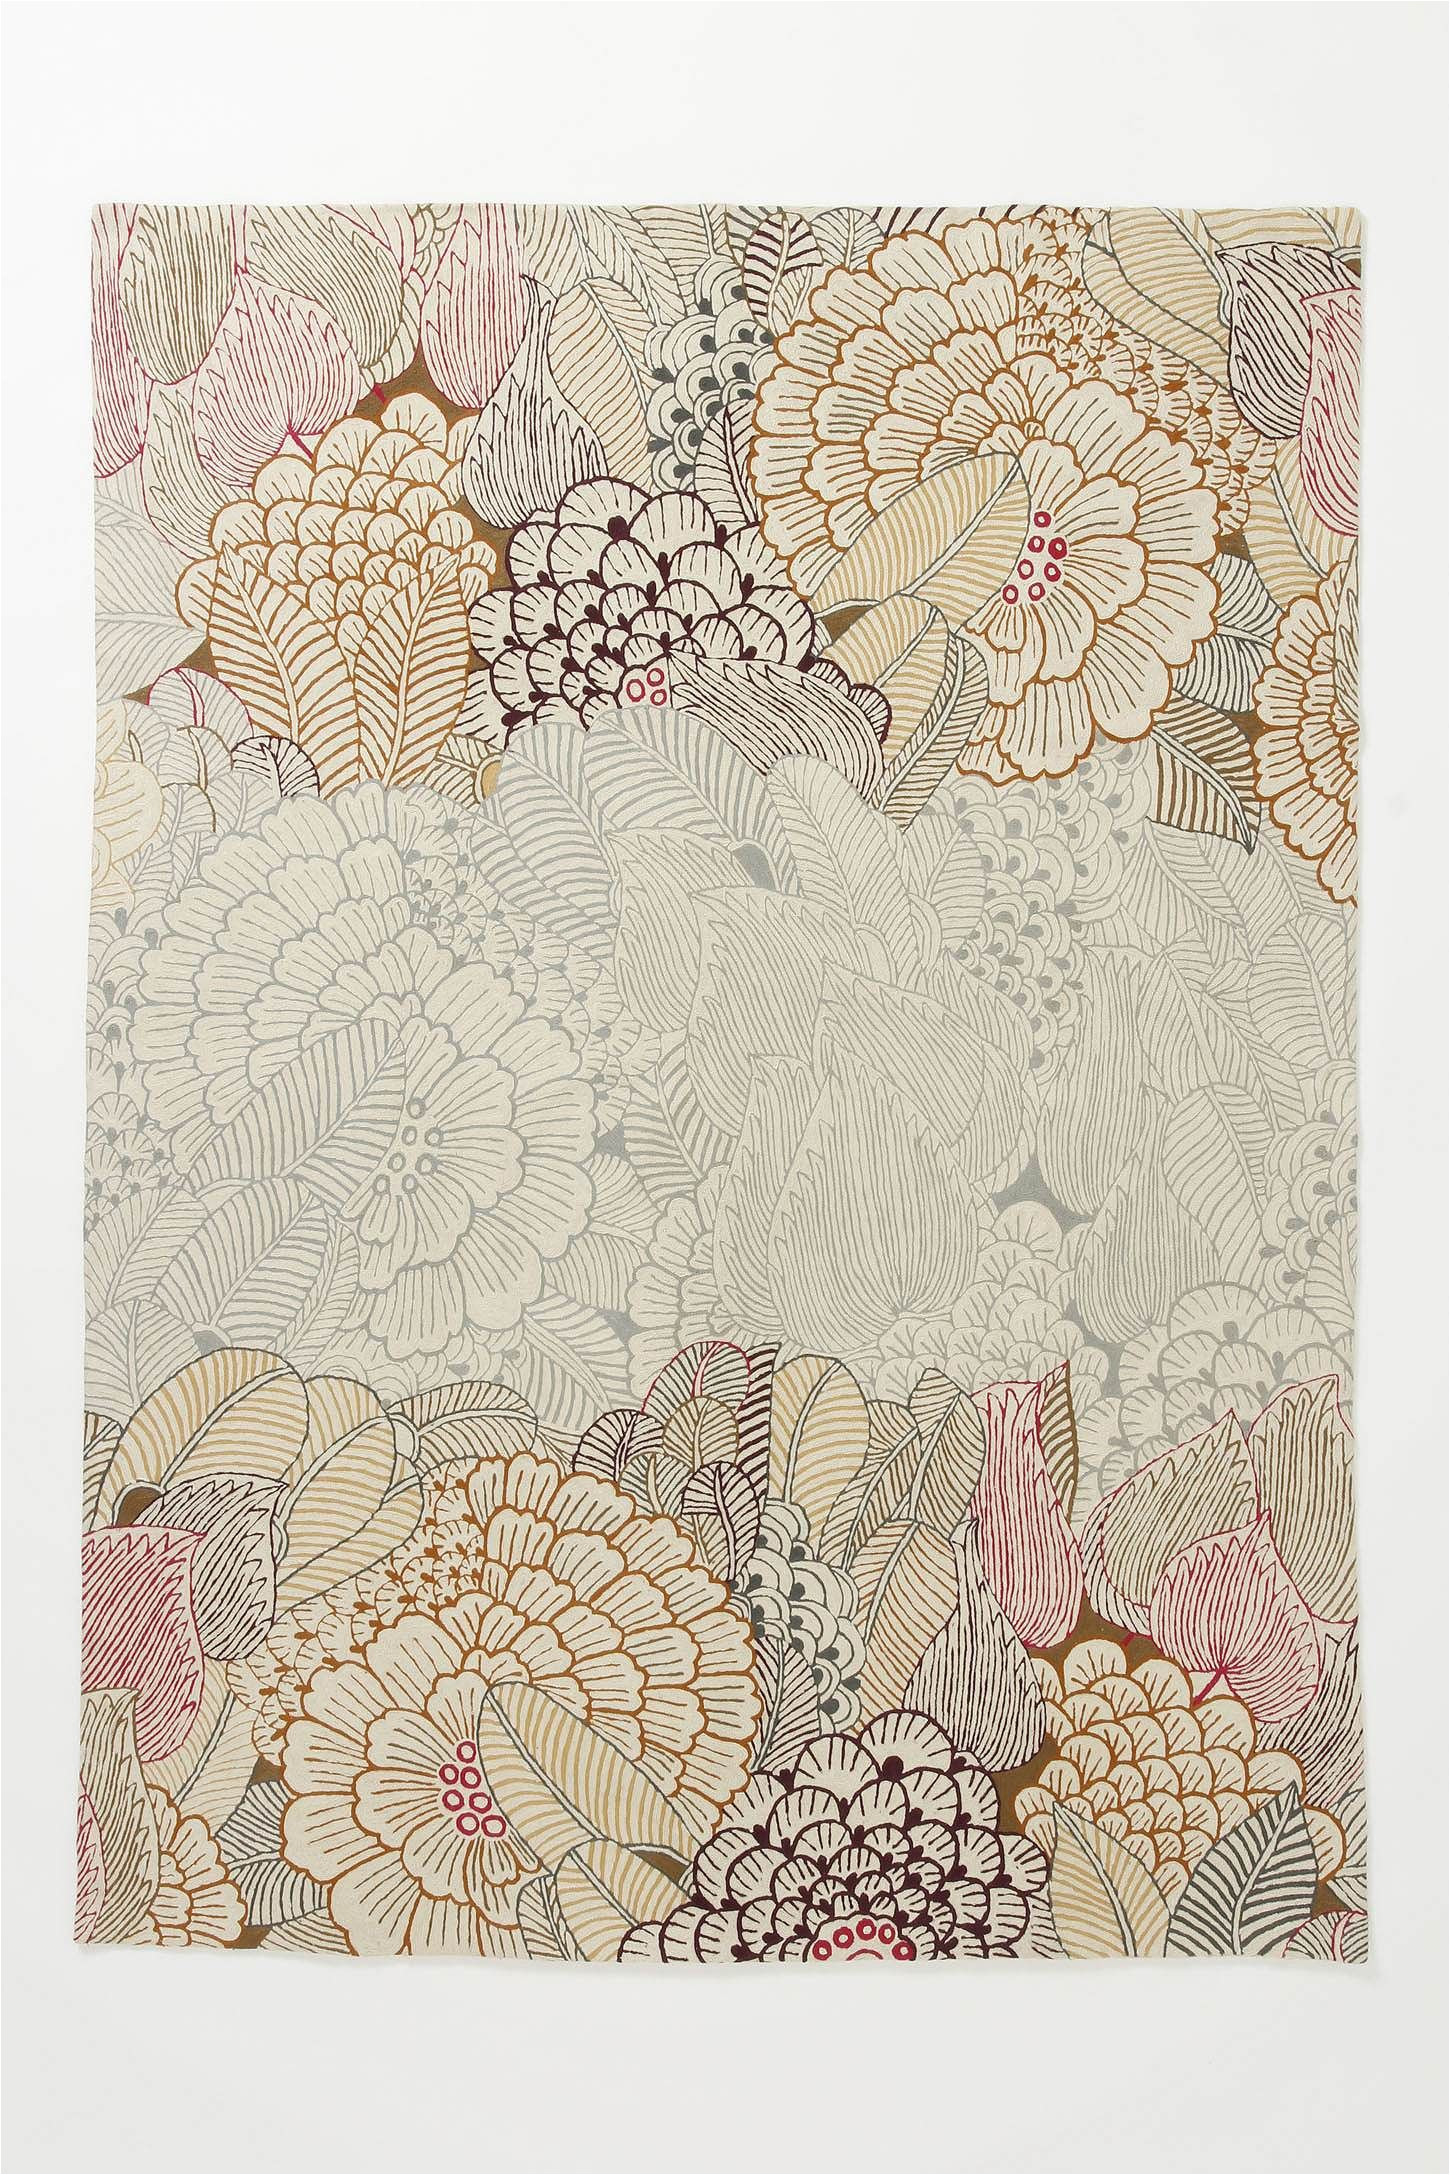 Purpose Of A Rug Pad Premium Felted Rug Pad Art Pinterest Rugs Home Rugs and